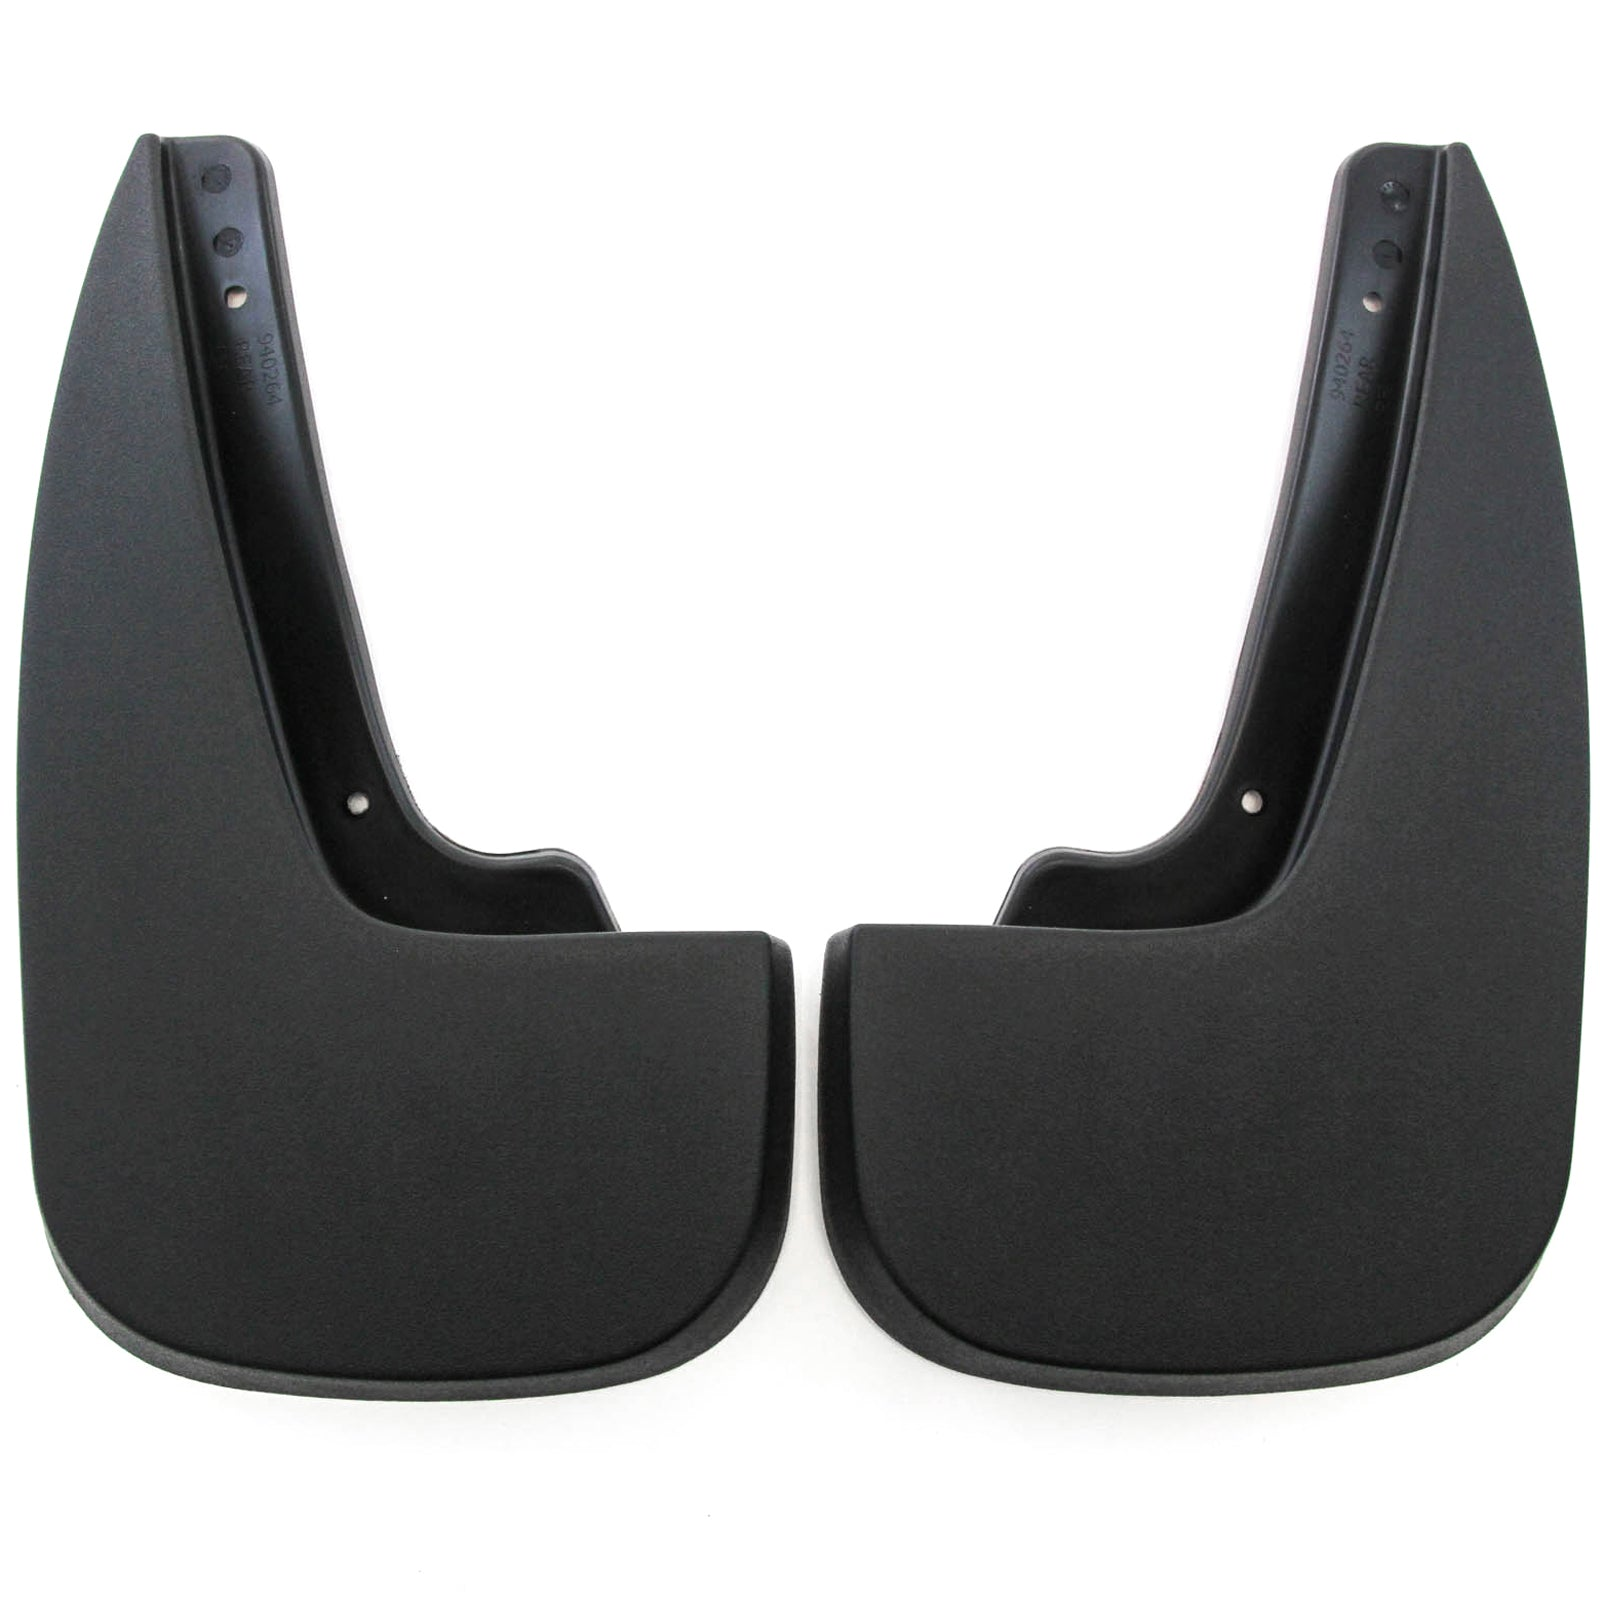 2010-2017 Compatible with Chevy Equinox Mud Flaps Mud Guards Splash Guards Rear Molded 2pc Pair